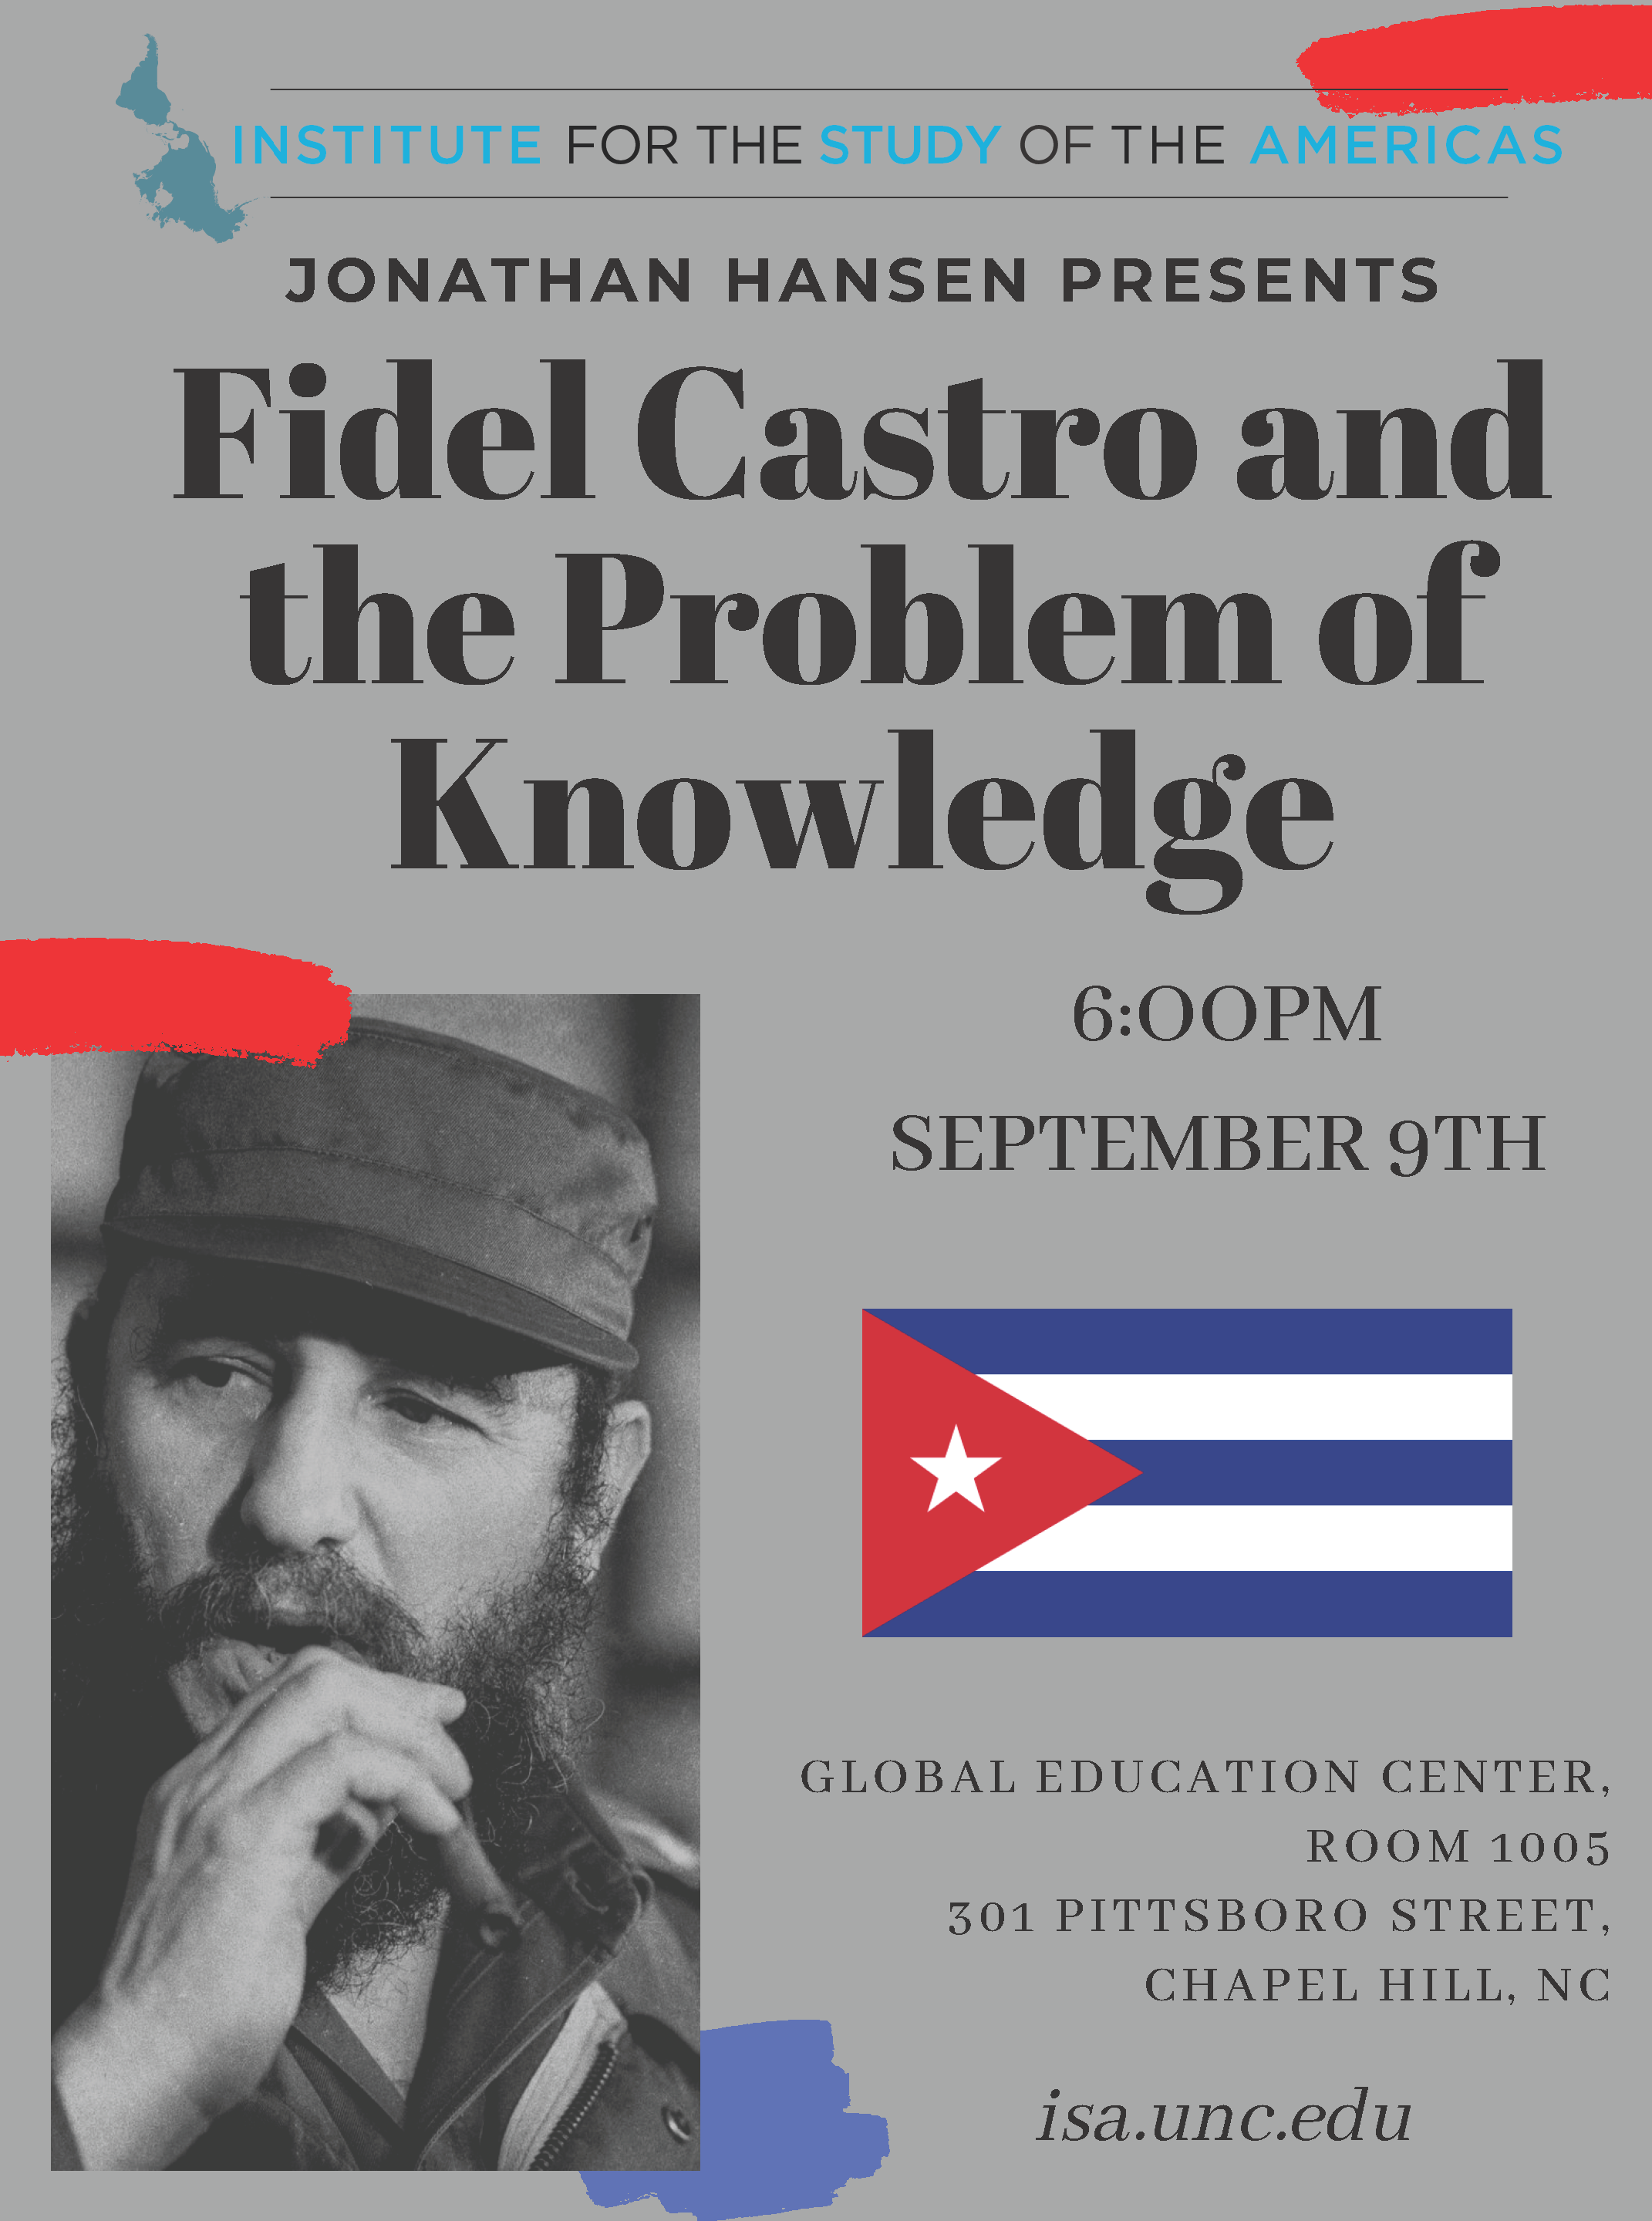 Jonathan Hansen: Fidel Castro and the Problem of Knowledge